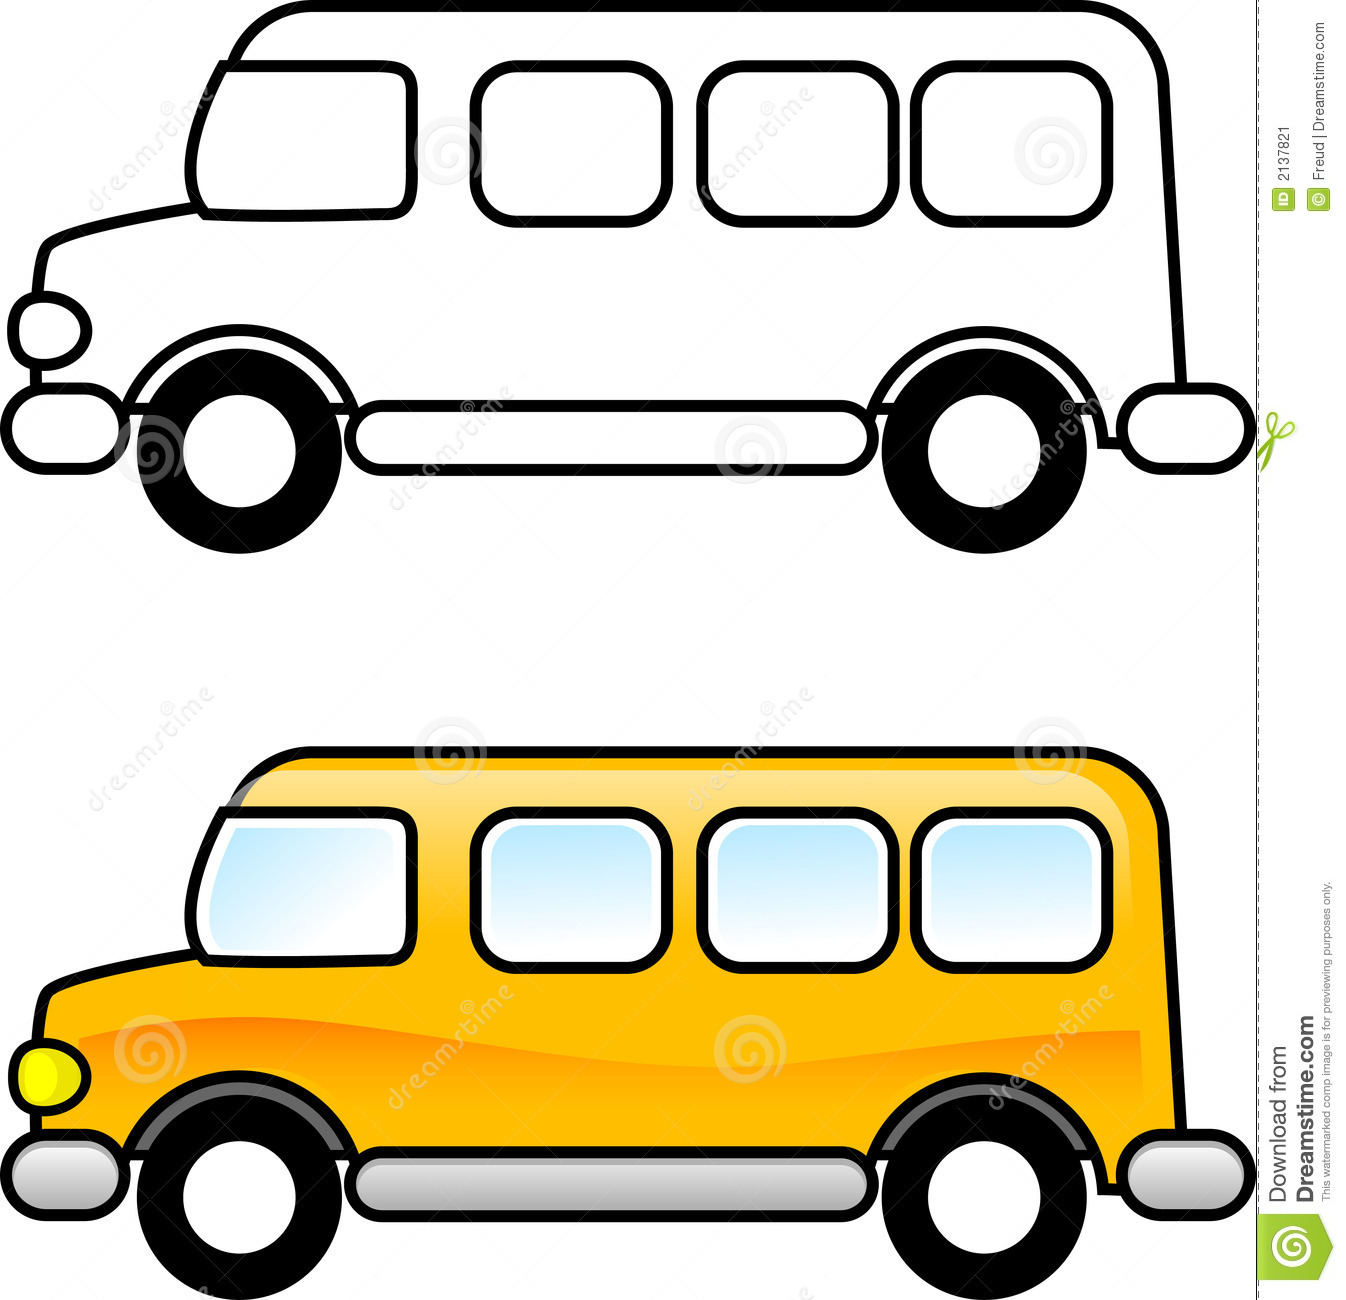 1346x1300 School Bus Clipart Yellow Outline Only